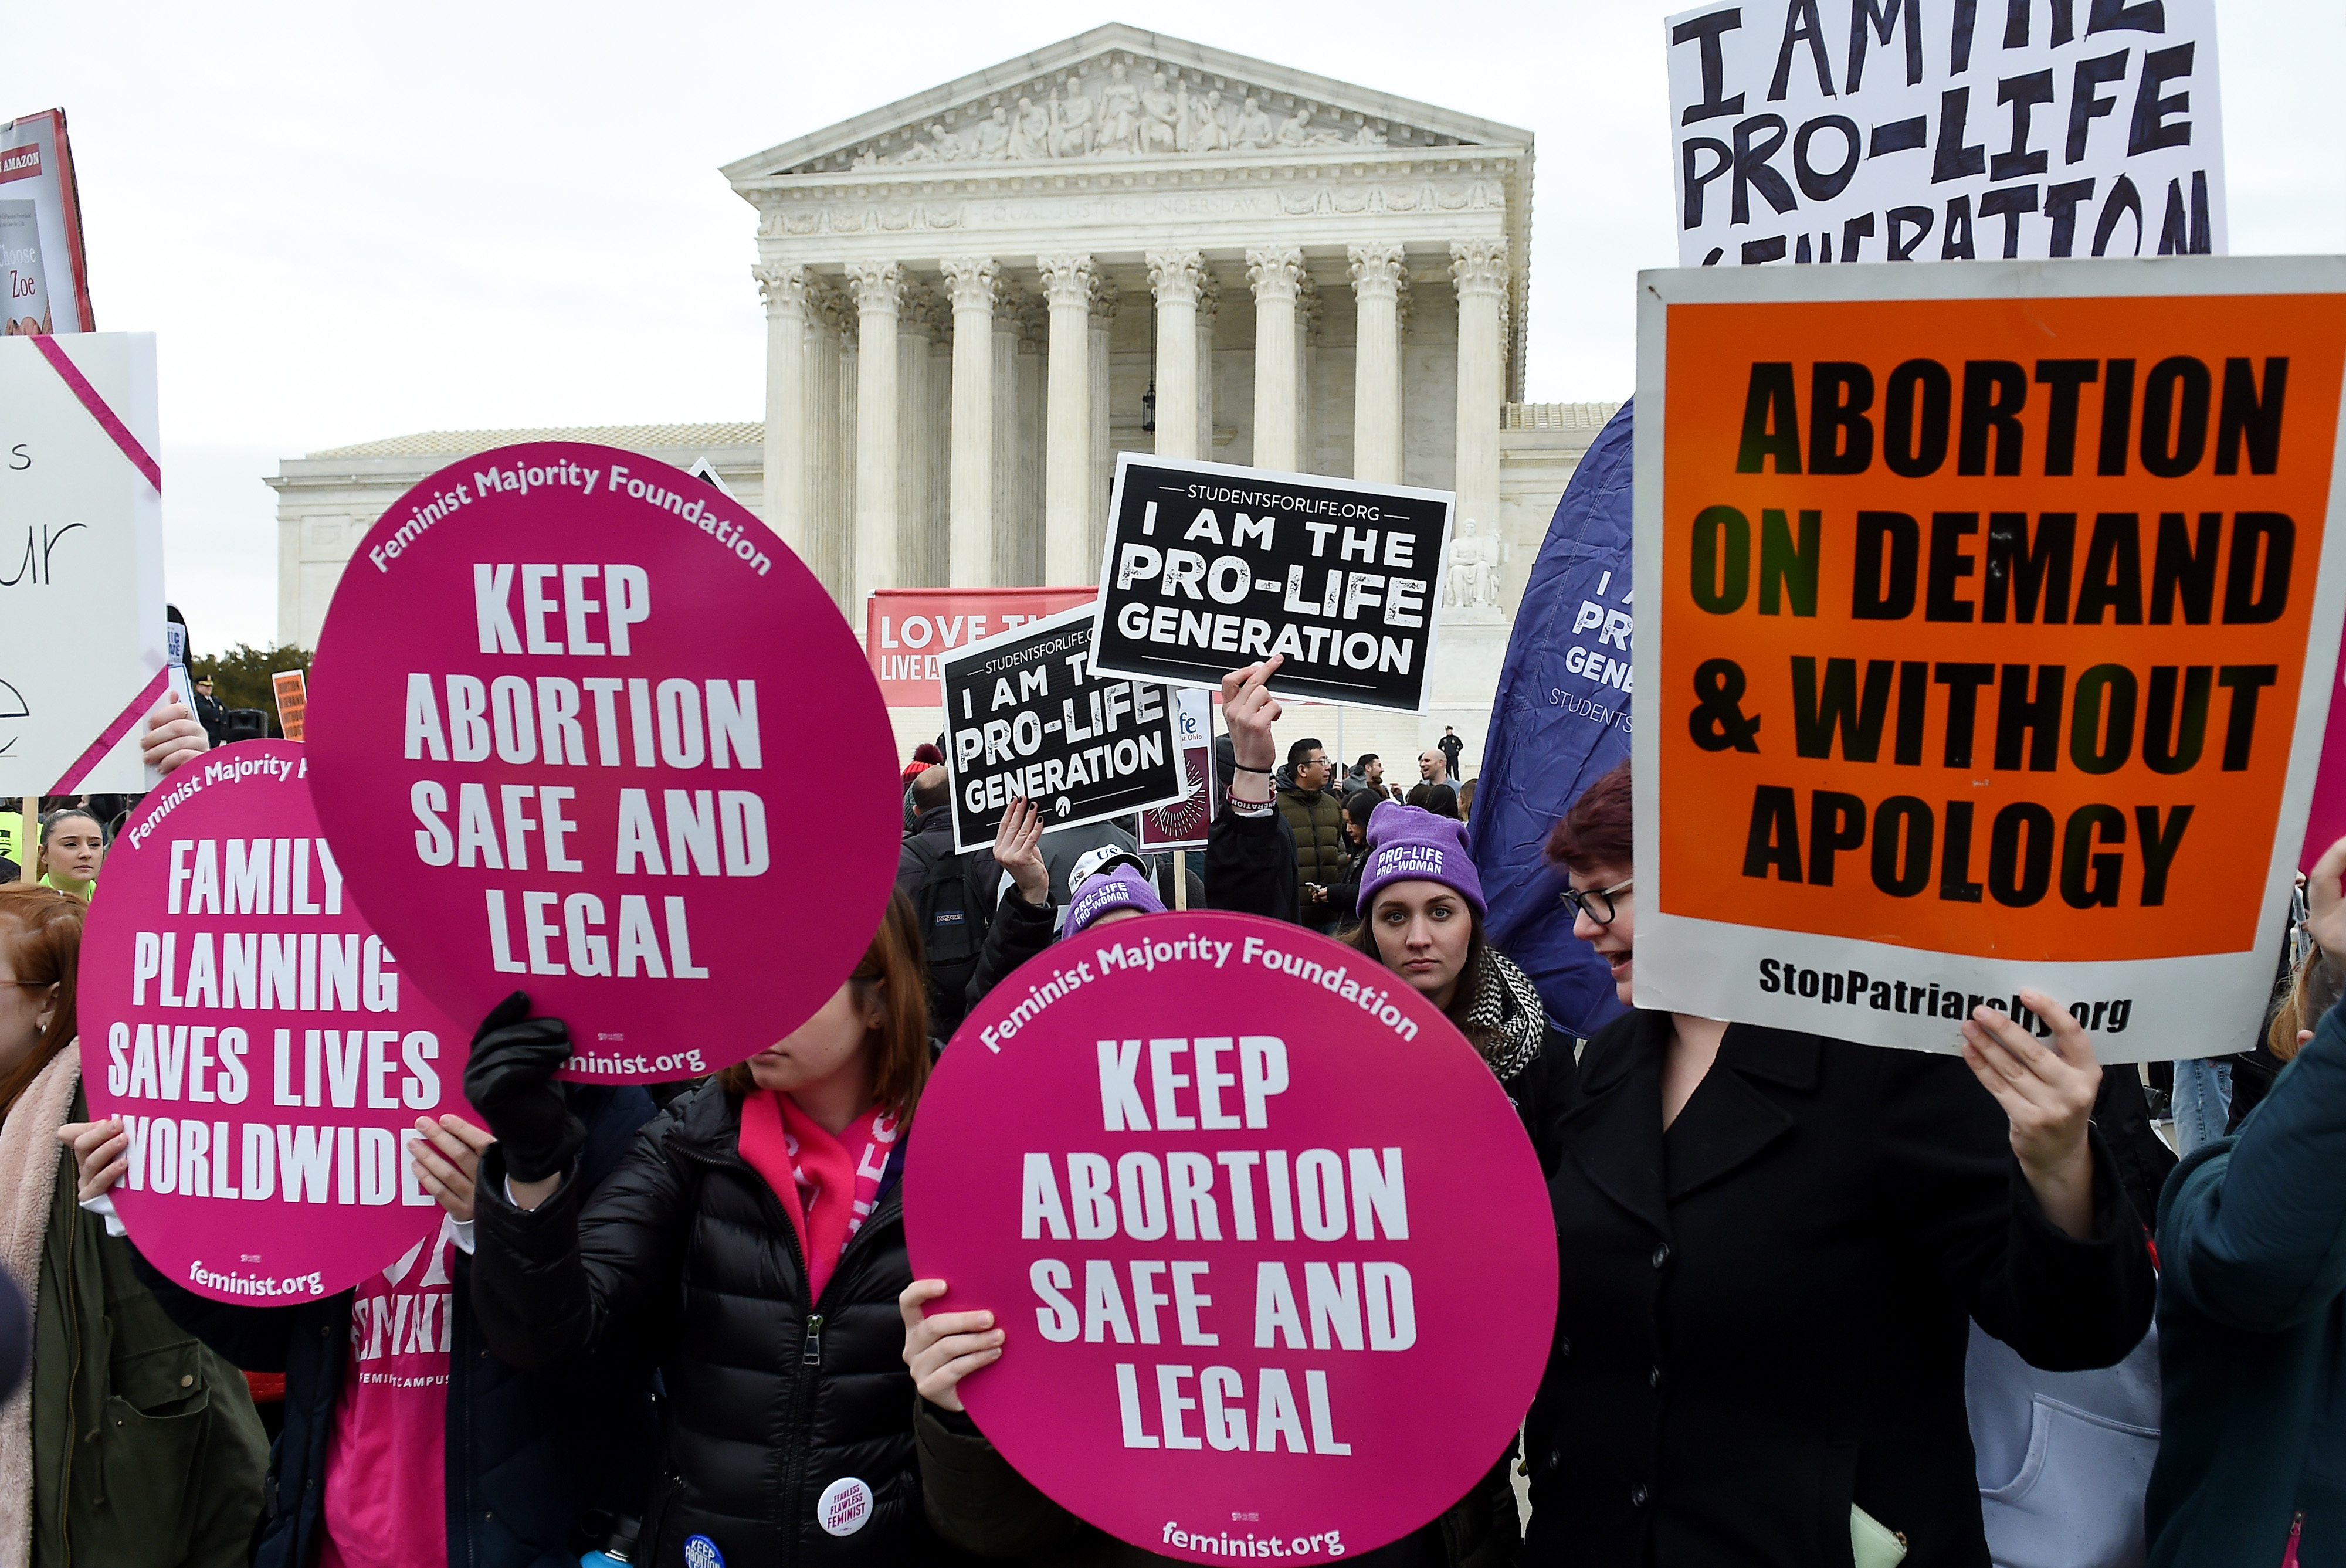 Abortion rights supporters and anti-abortion advocates demonstrate in front of the the Supreme Court during the 47th annual March for Life on Jan. 24 in Washington, D.C.  in decades on the controversial subject of abortion.